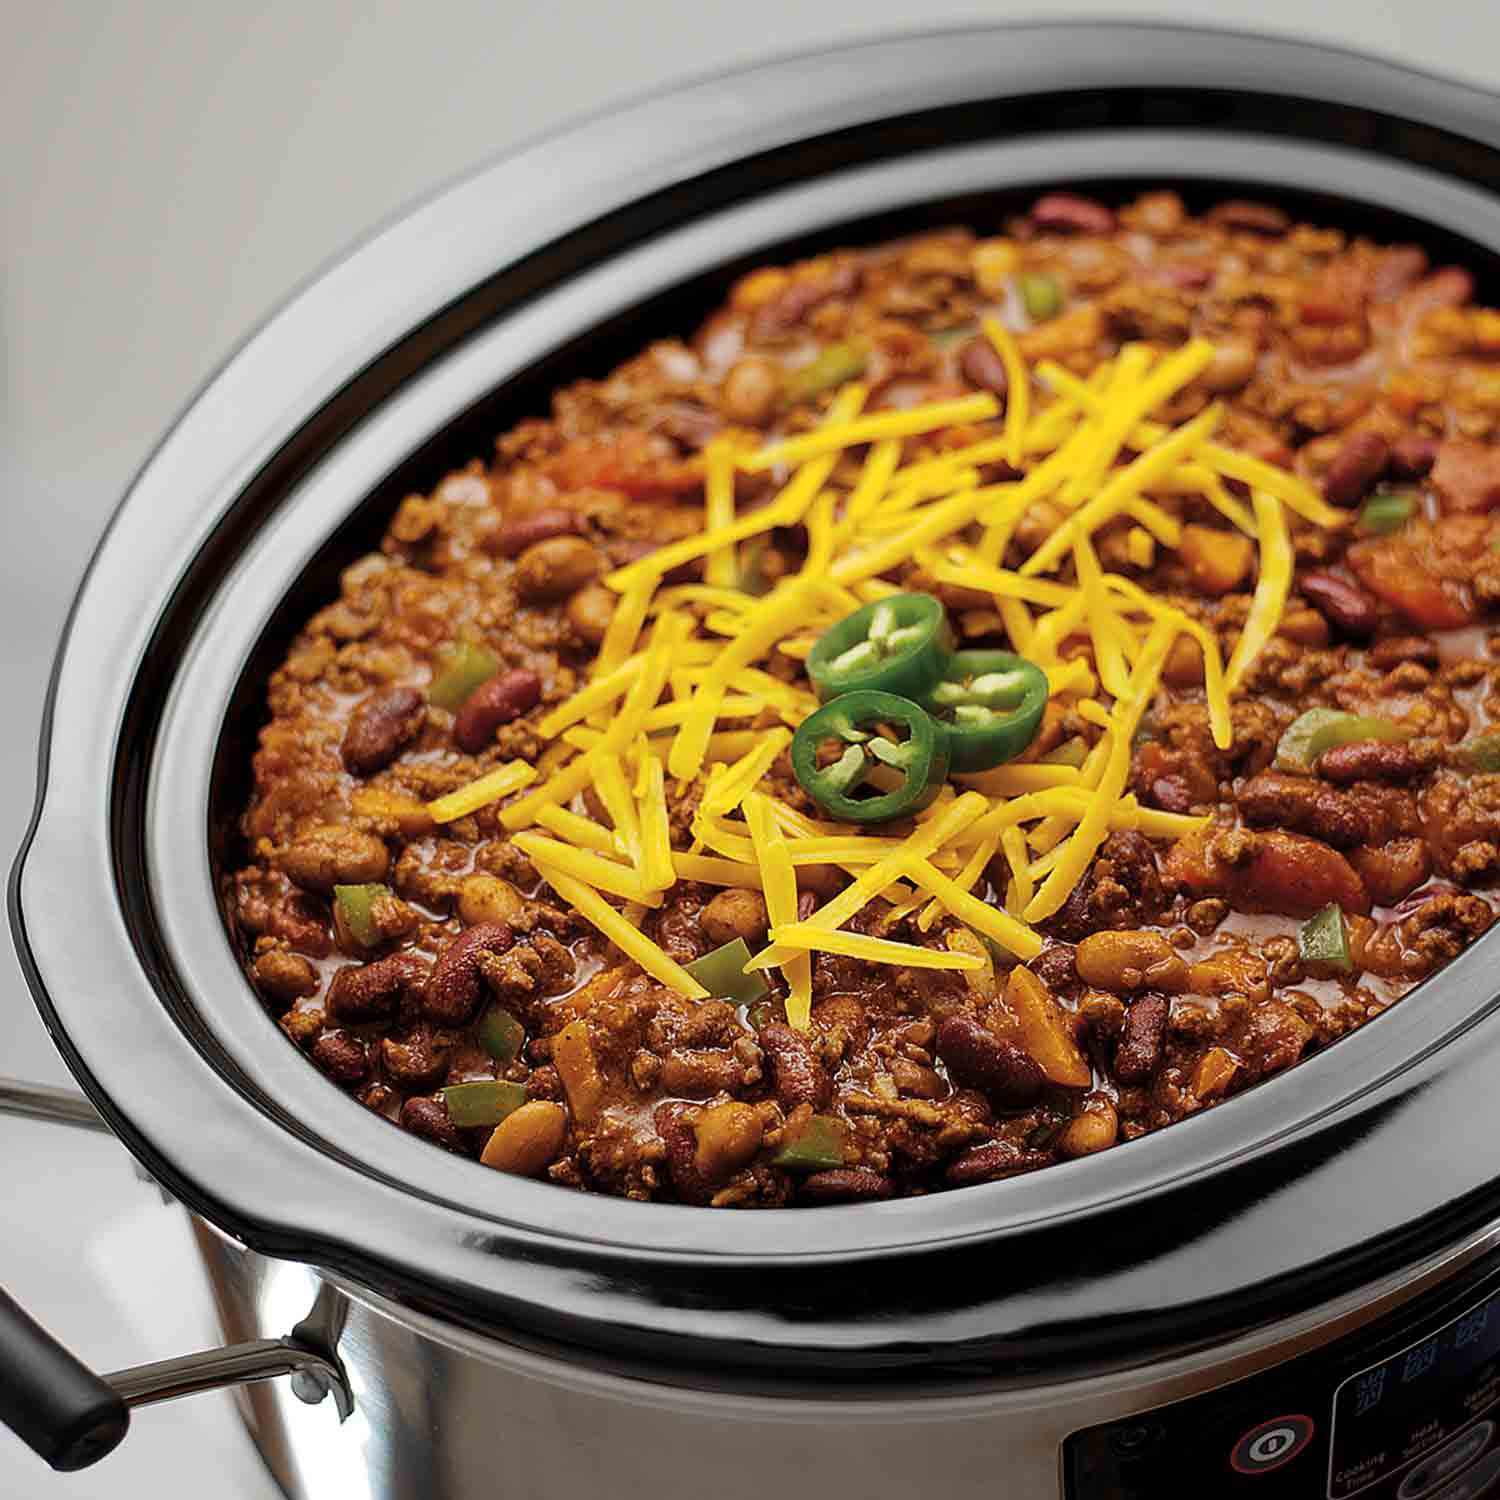 Everyone is a fan of the Hamilton Beach® Stay or Go® 5 Qt. Programmable Slow Cooker